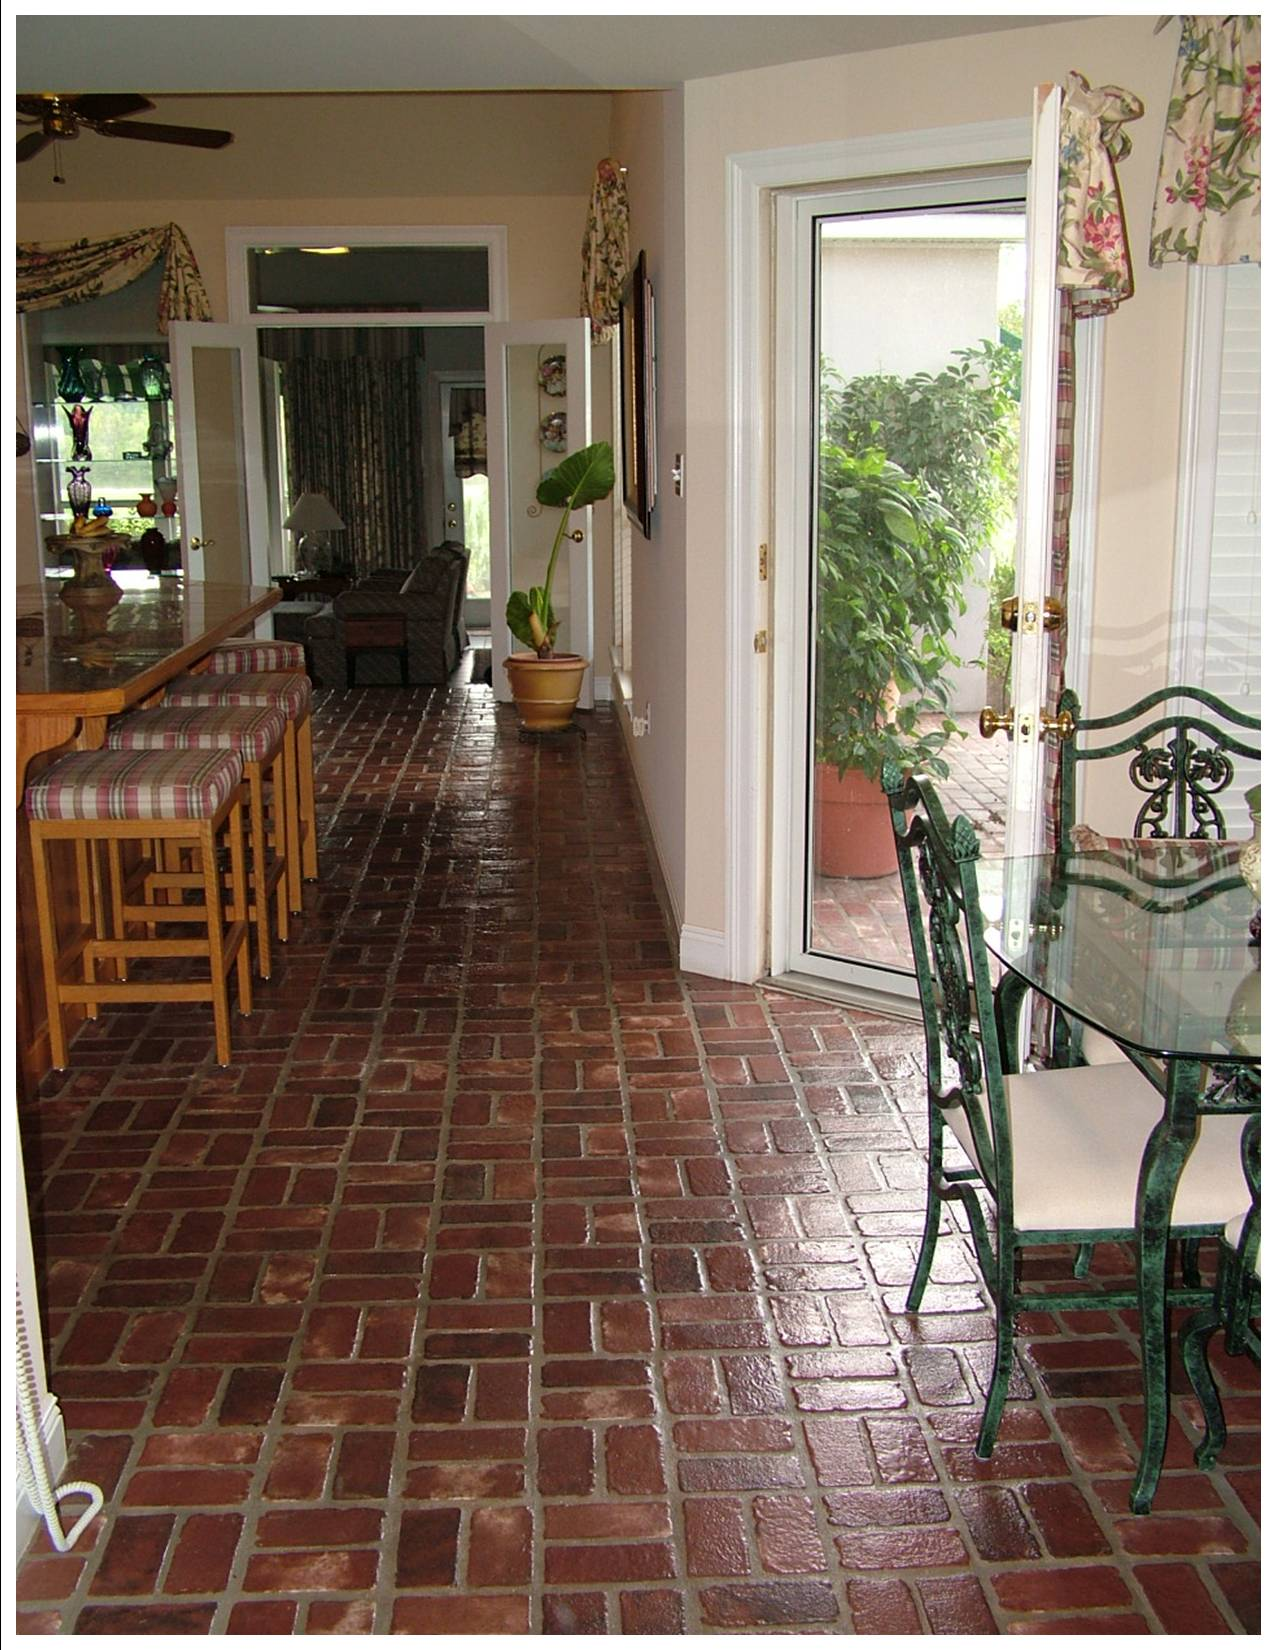 Ordinaire Magnolia Brick Pavers